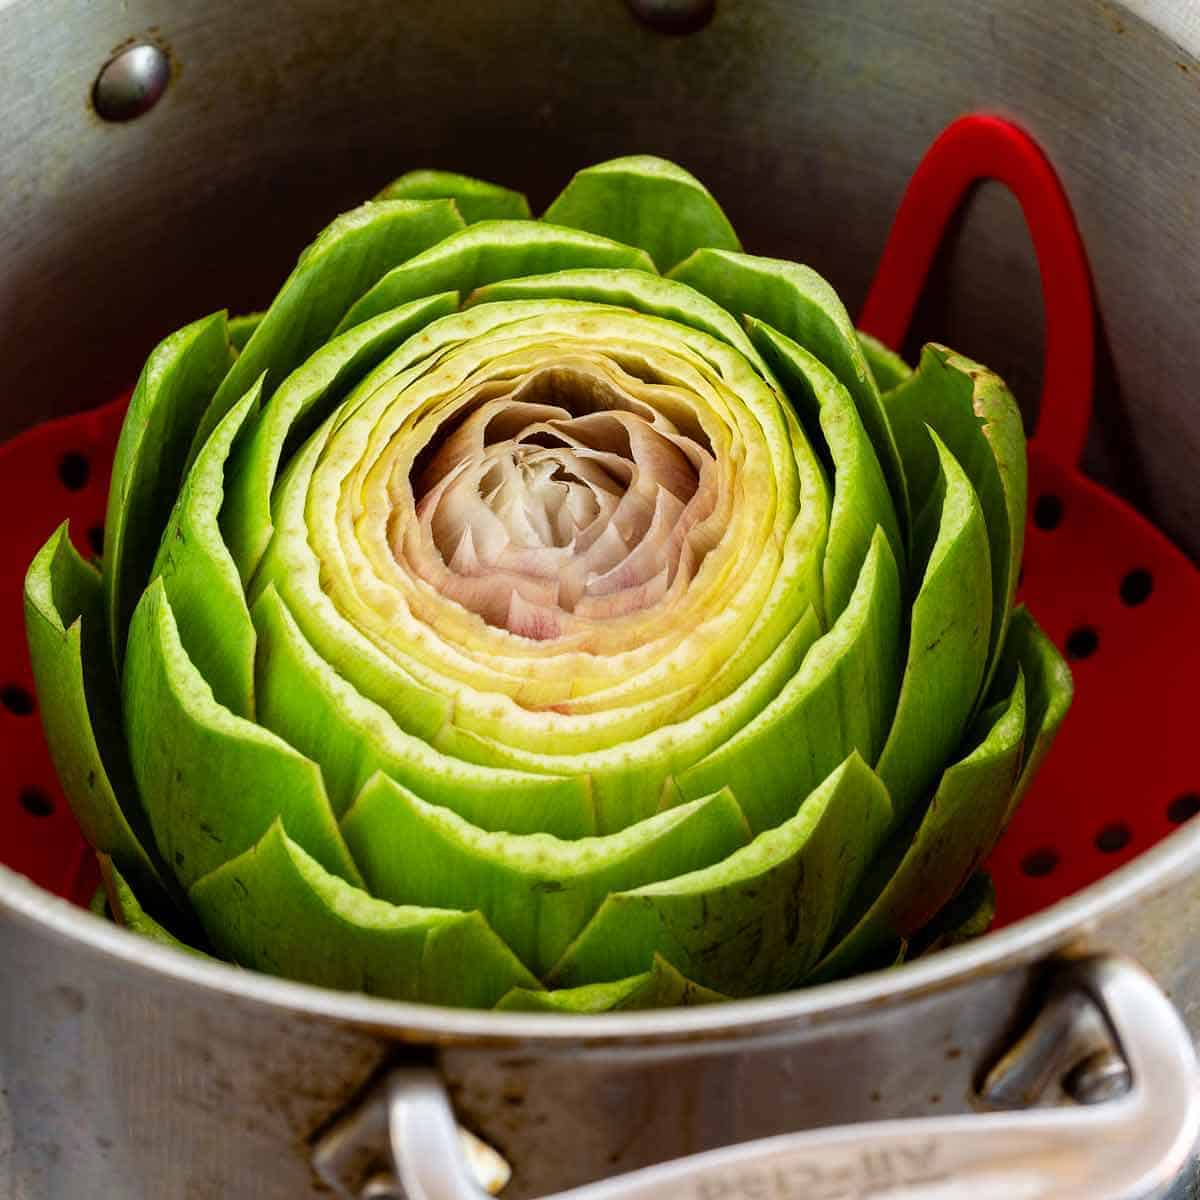 How to Cook Artichokes